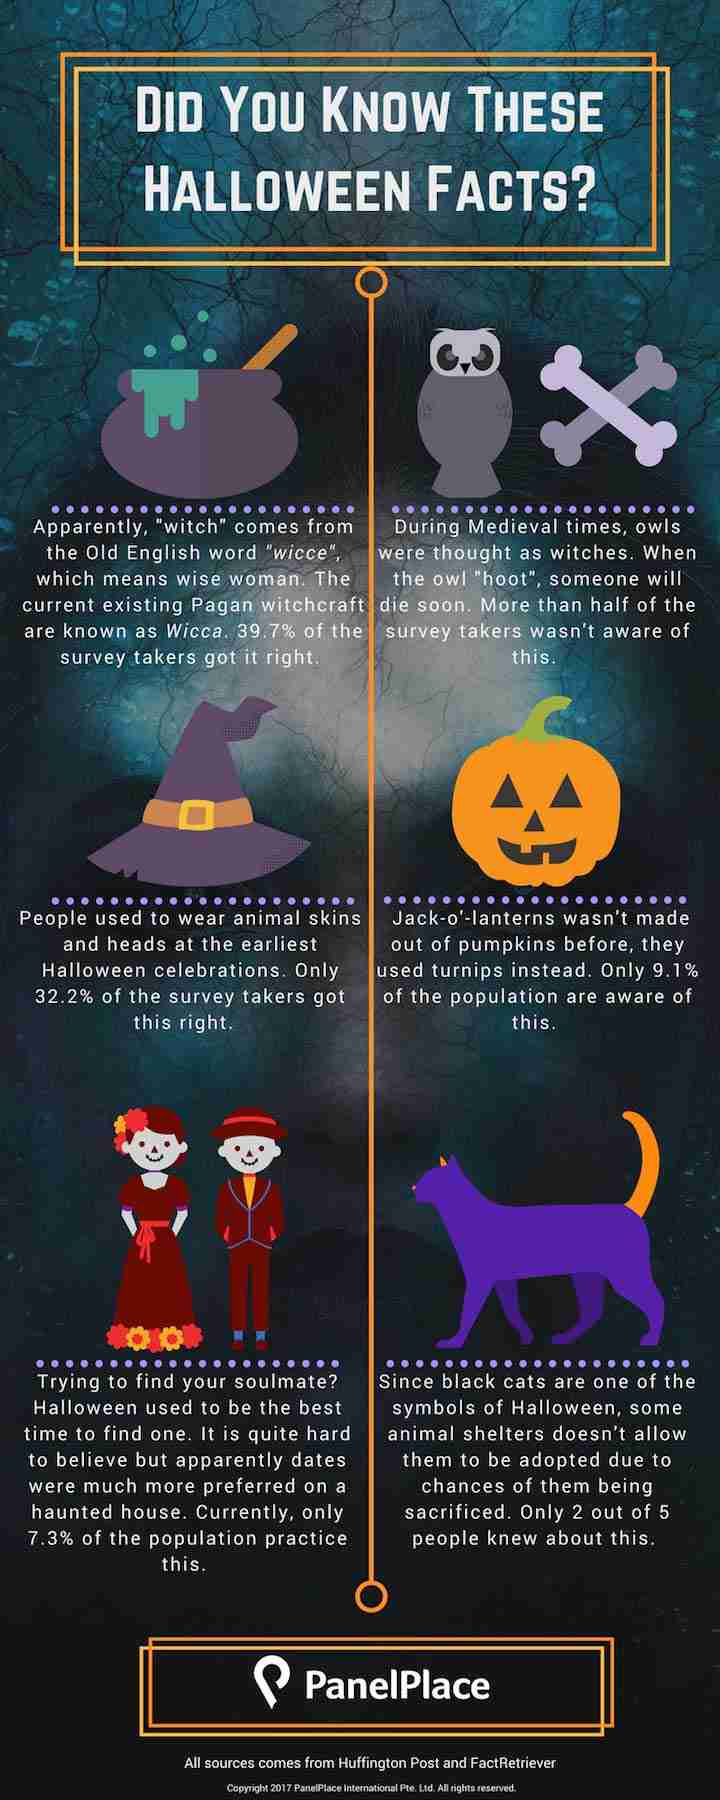 Did You Know These Halloween Facts?